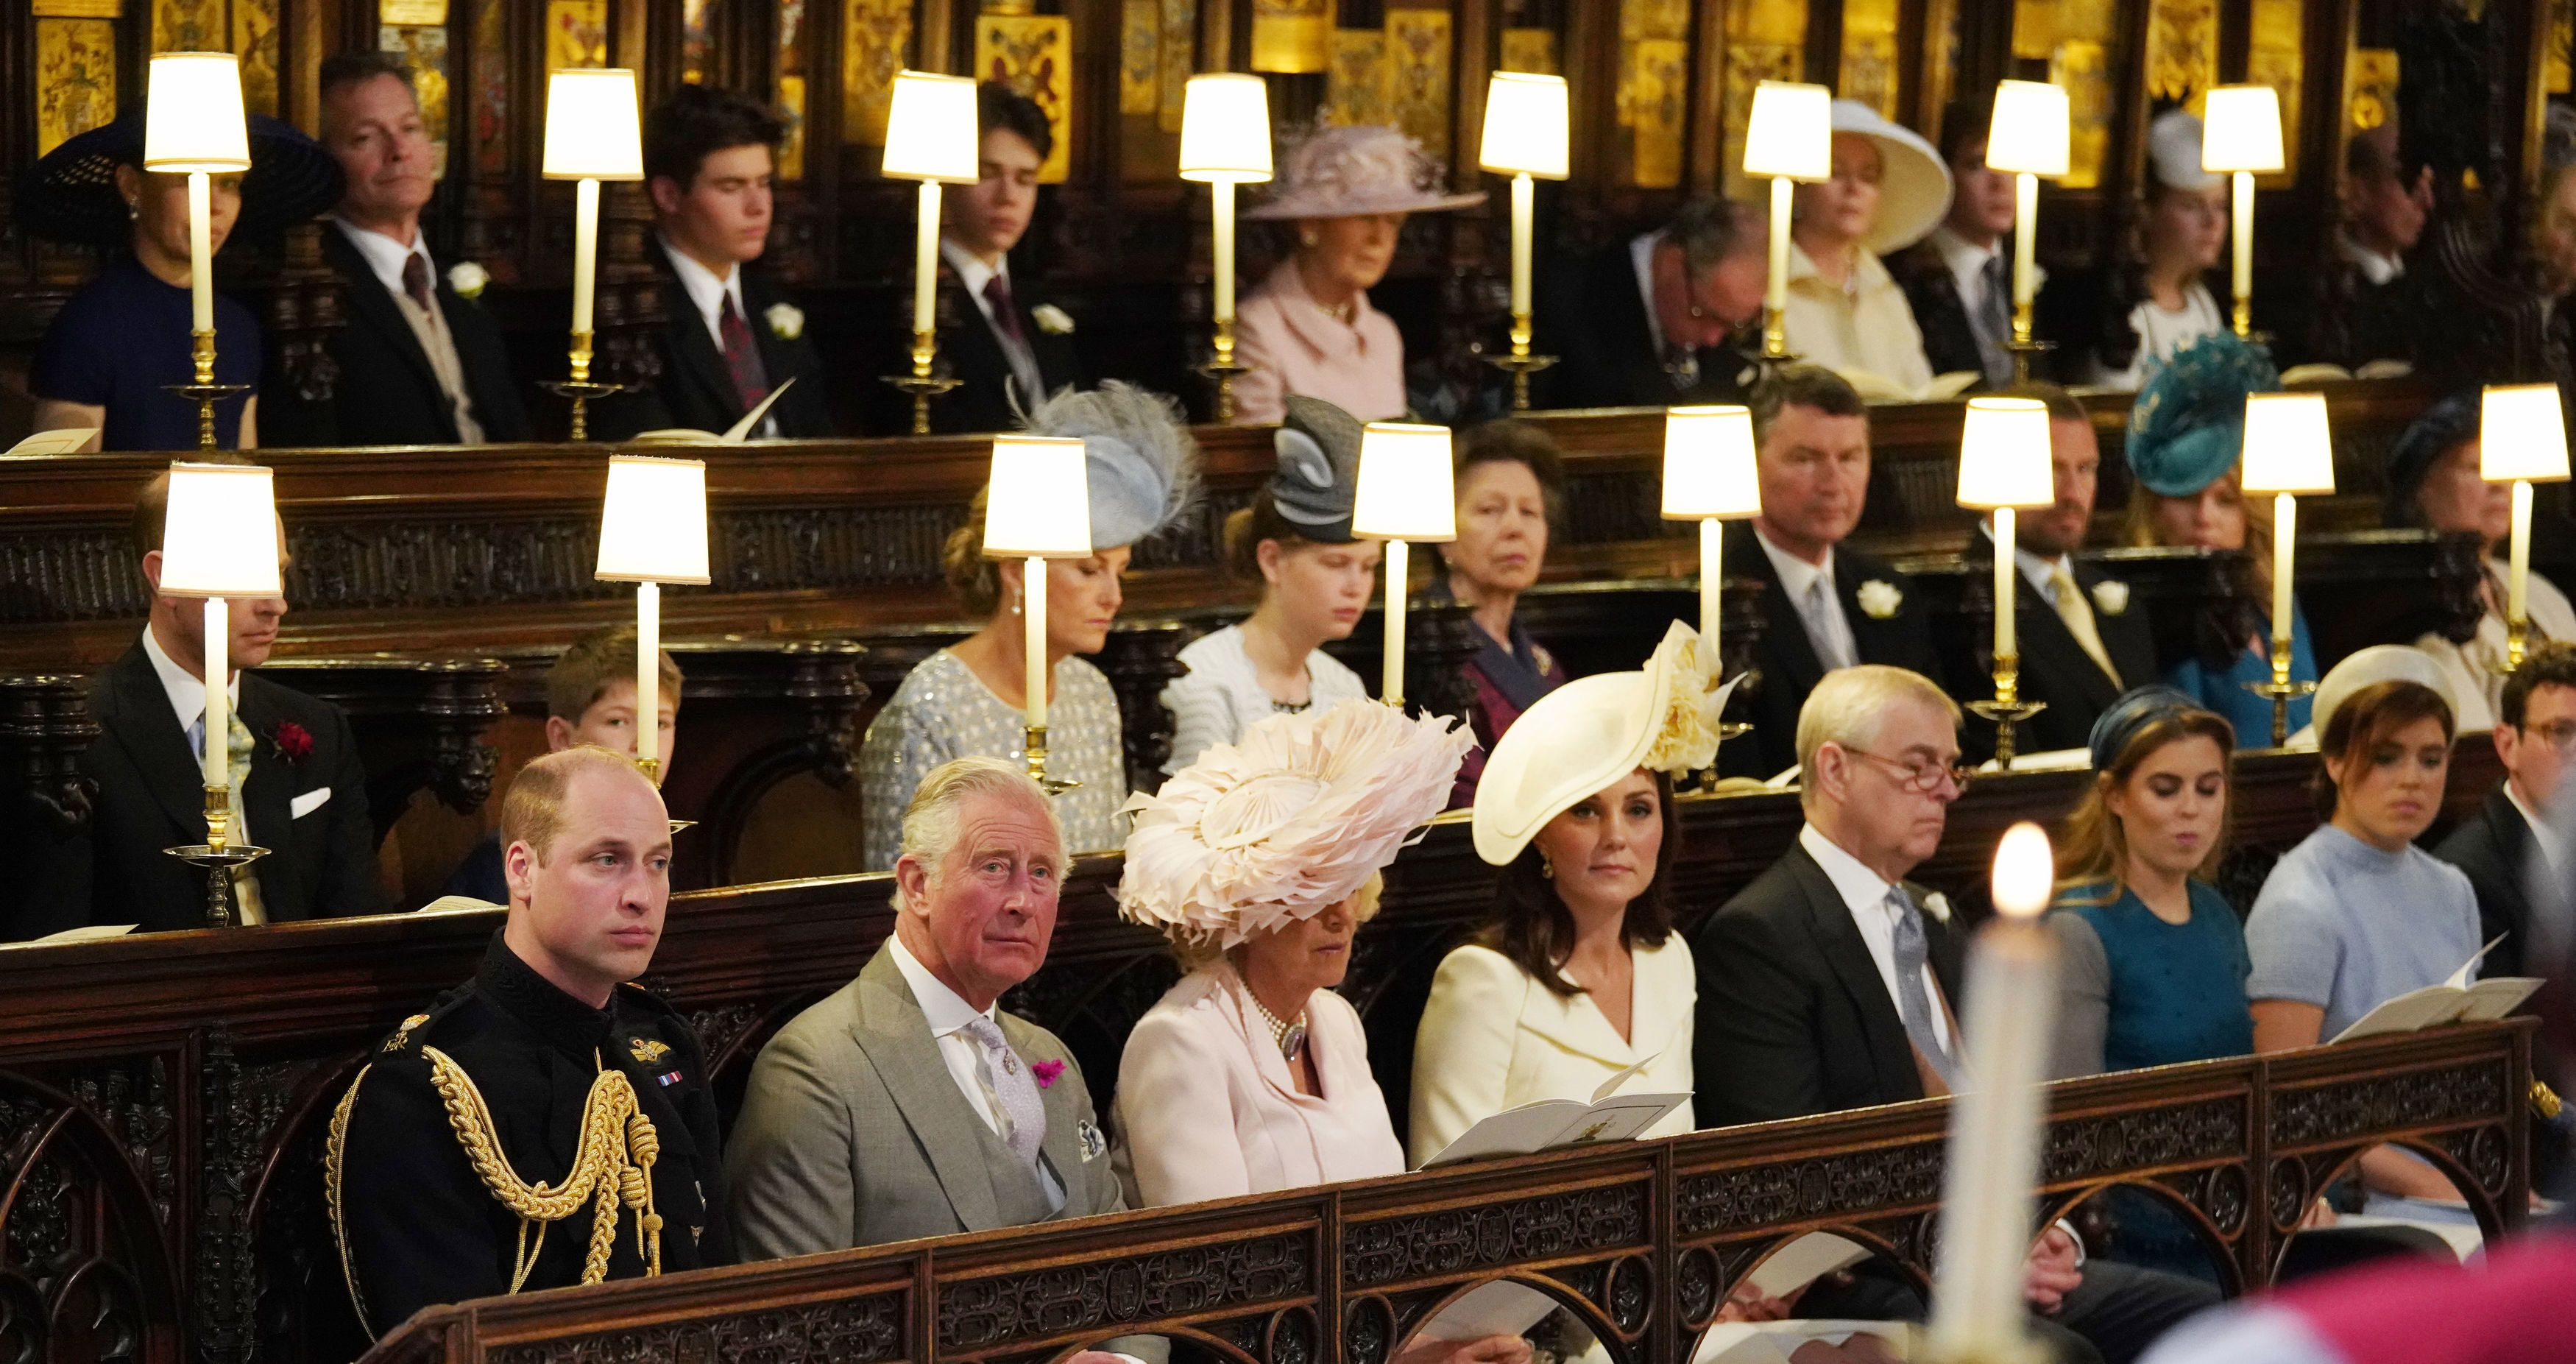 There Were Some Very British Responses To The American Preacher At The Royal Wedding